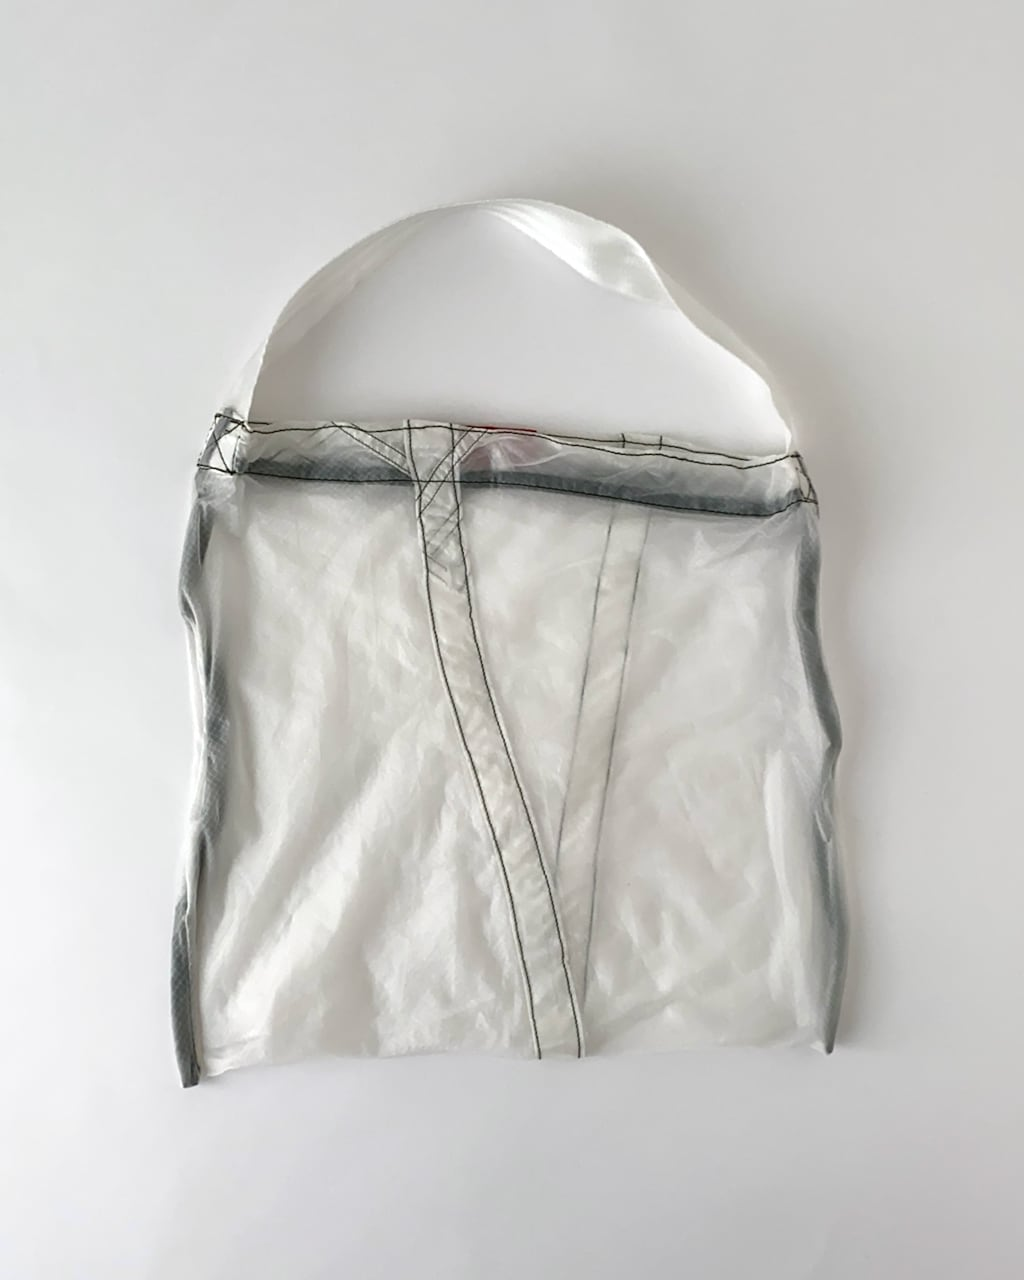 Vintage Parachute Light Bag White(PUEBCO)|ヴィンテージ パラシュートバッグ